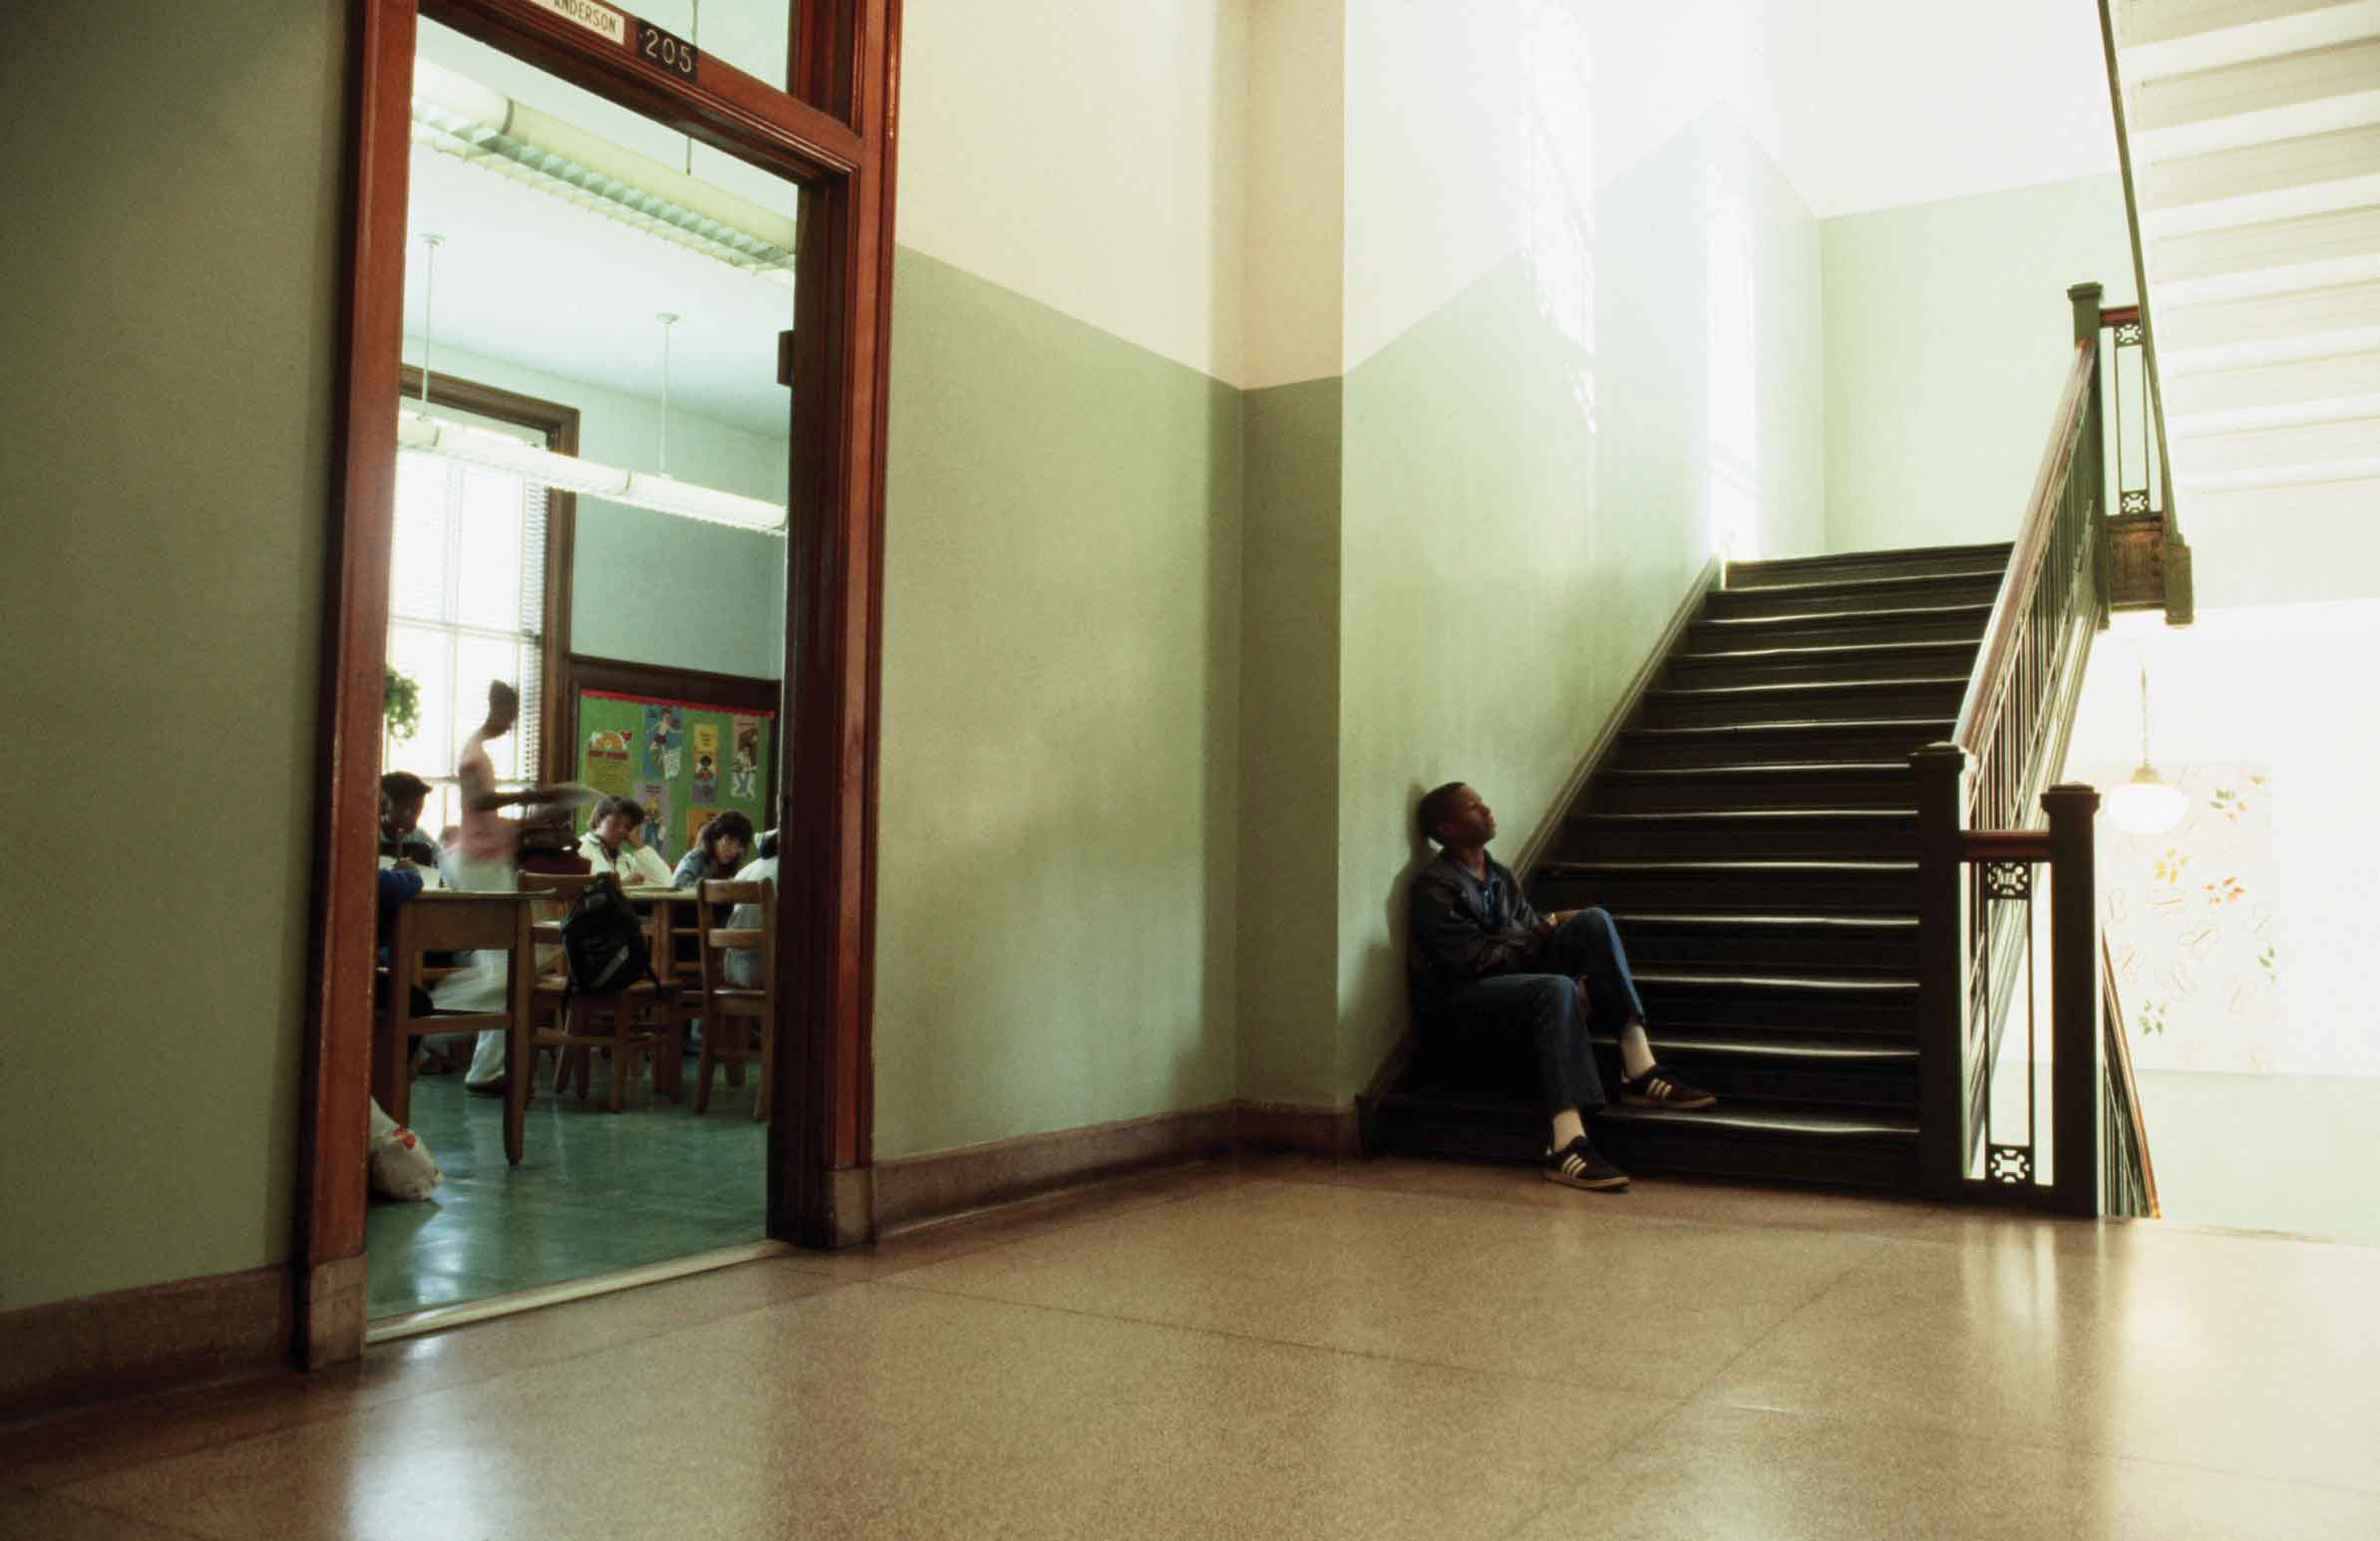 essays on truancy in schools This is not an example of the work written by our professional essay writers truancy and exclusion: right of appeal in to truancy, the lea and schools can deal.